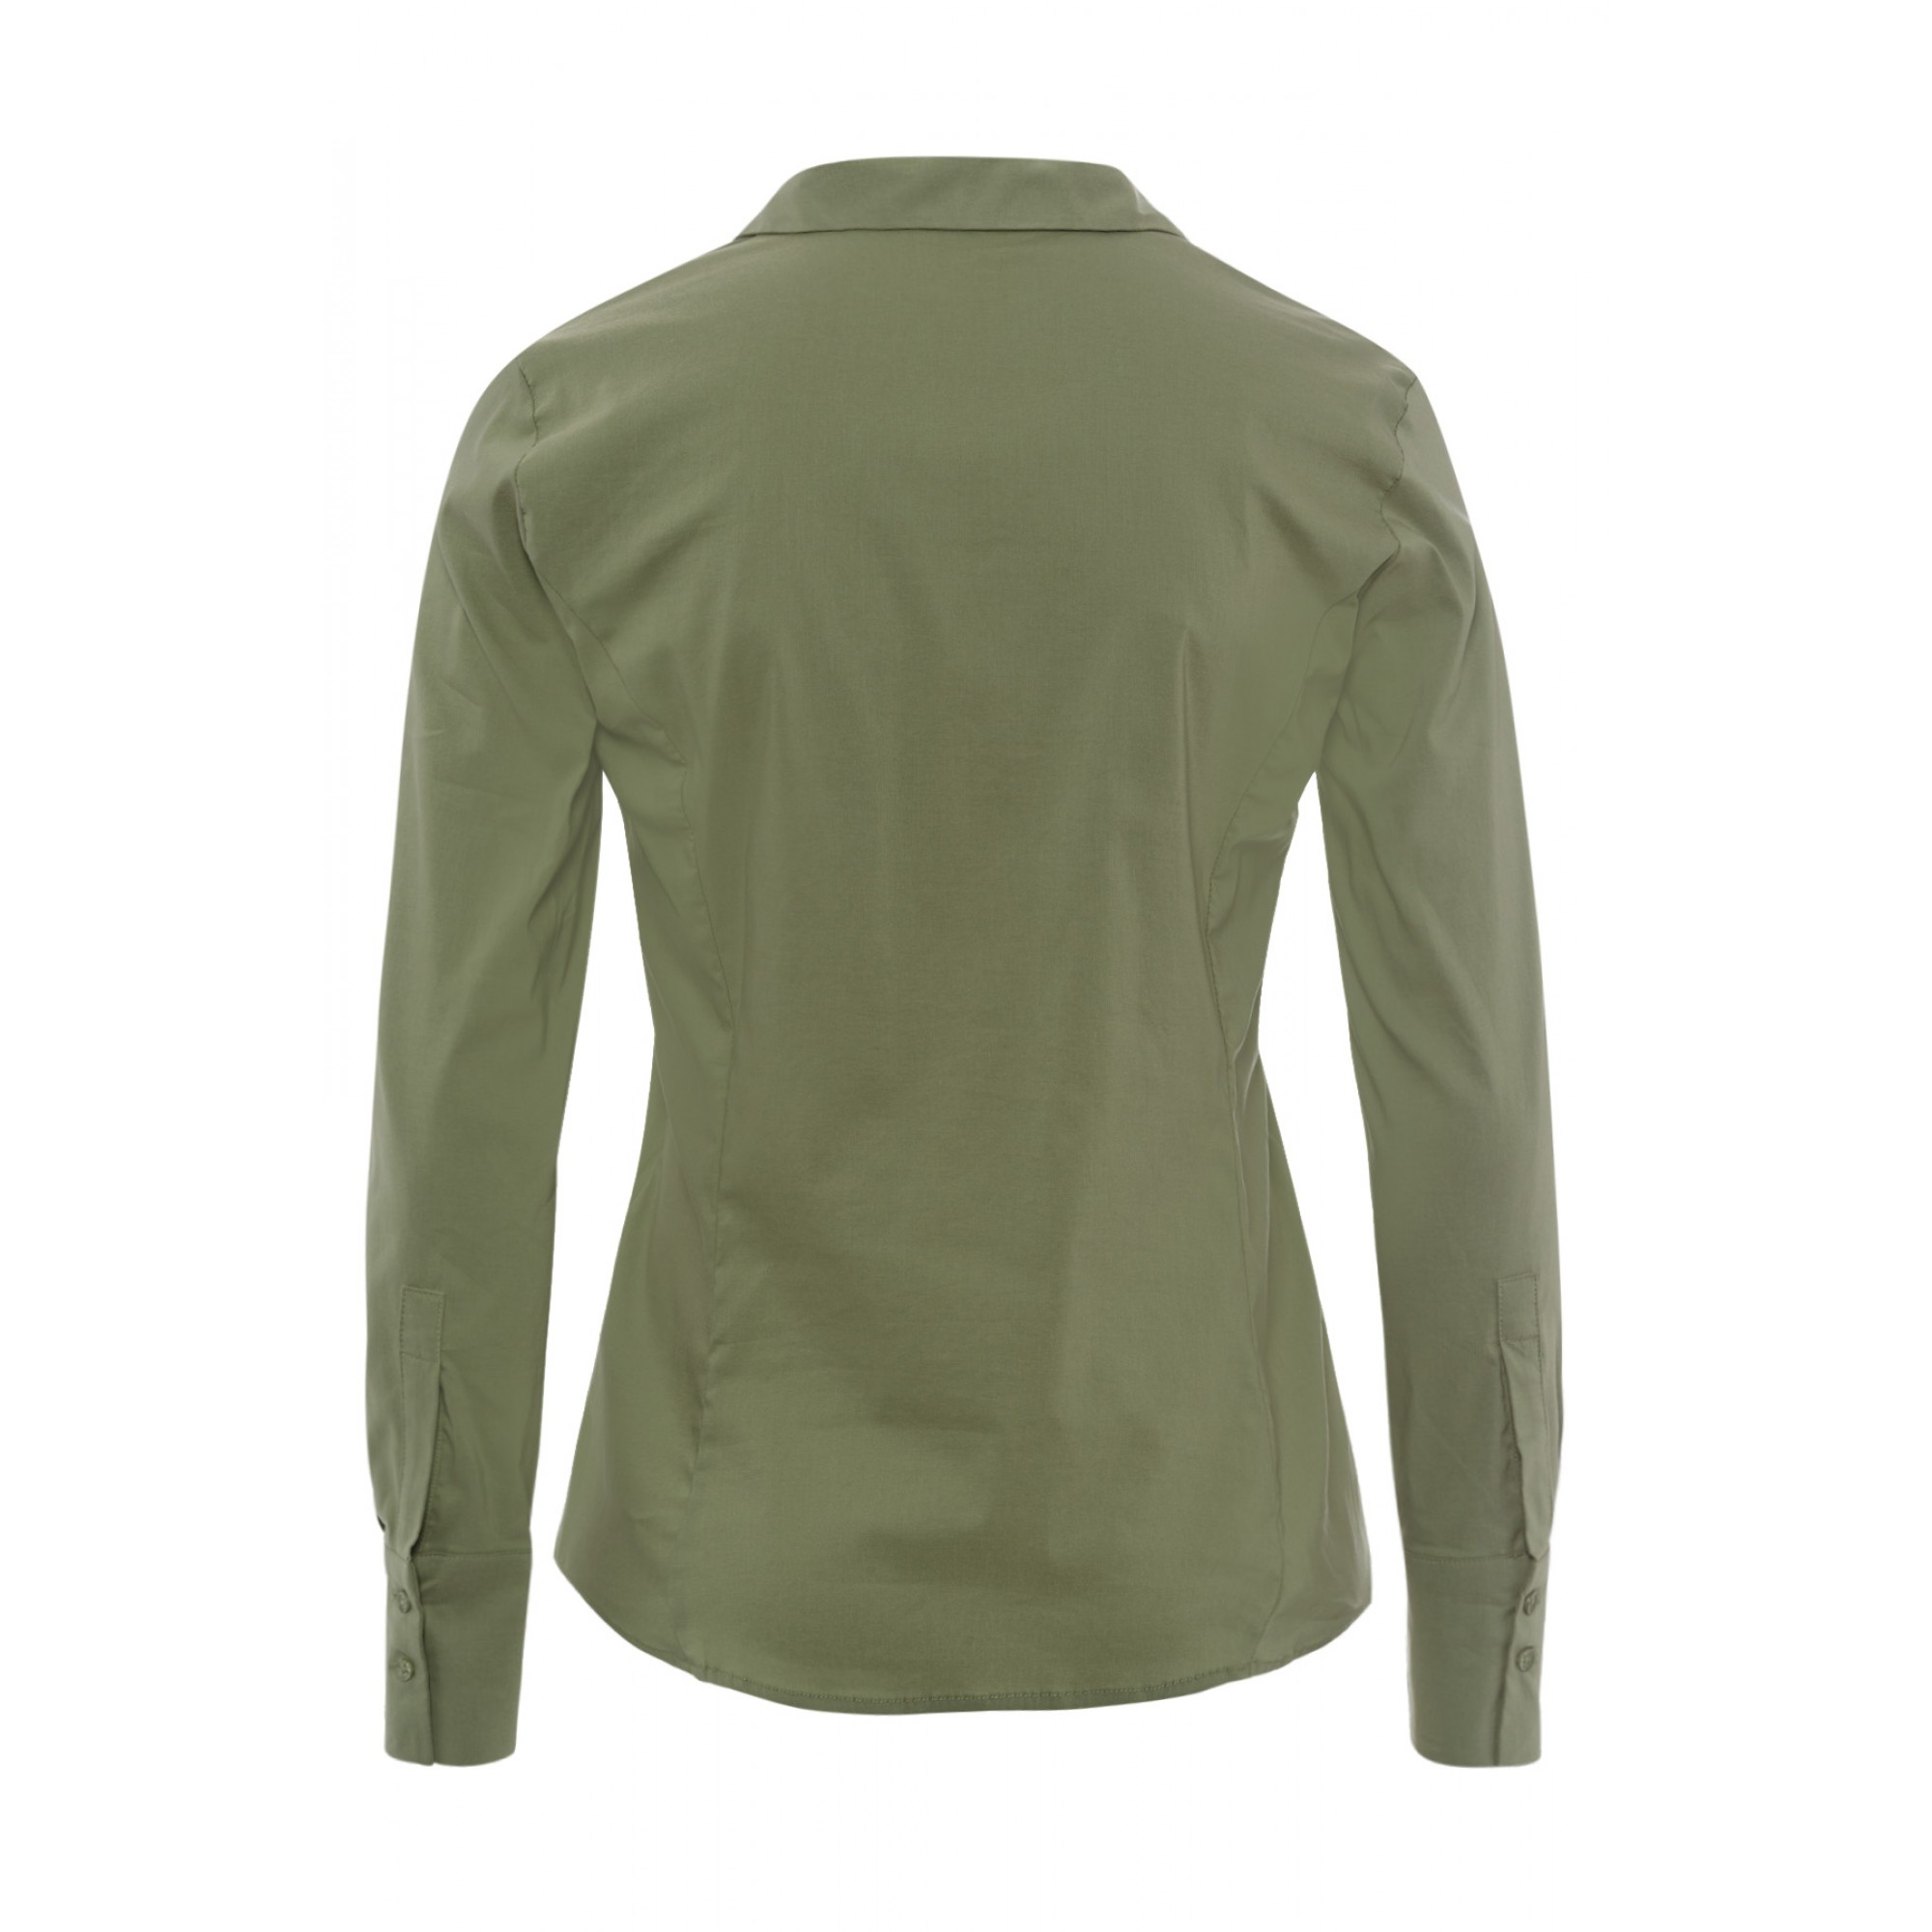 Businessbluse, khaki 11022572-0635 2